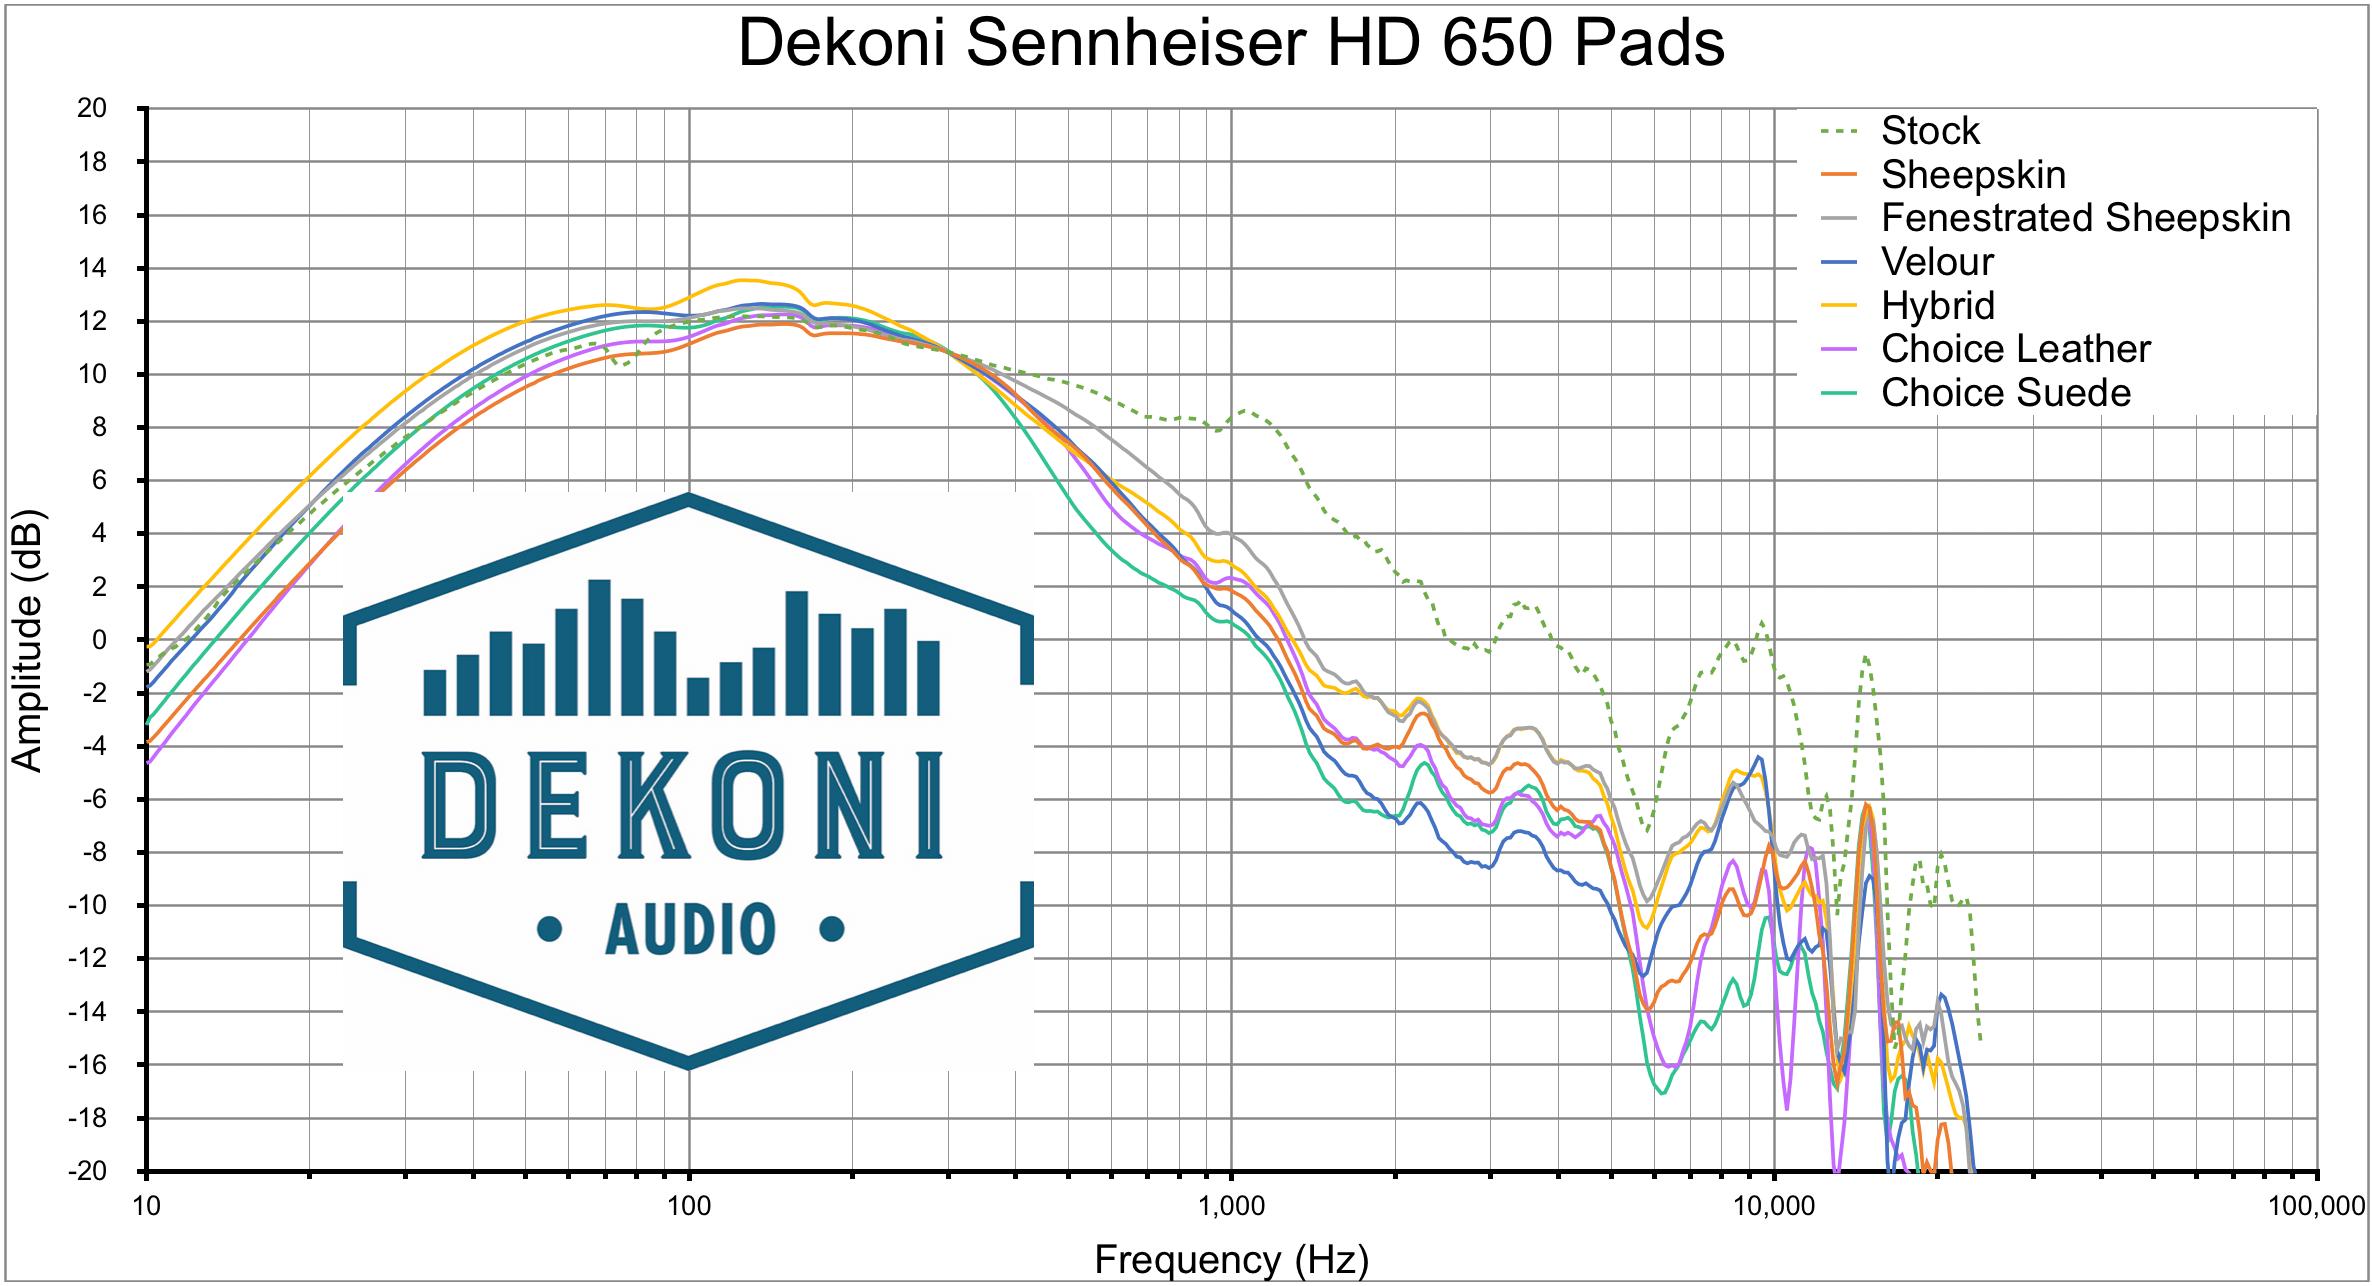 Dekoni HD 650 Pads Compared